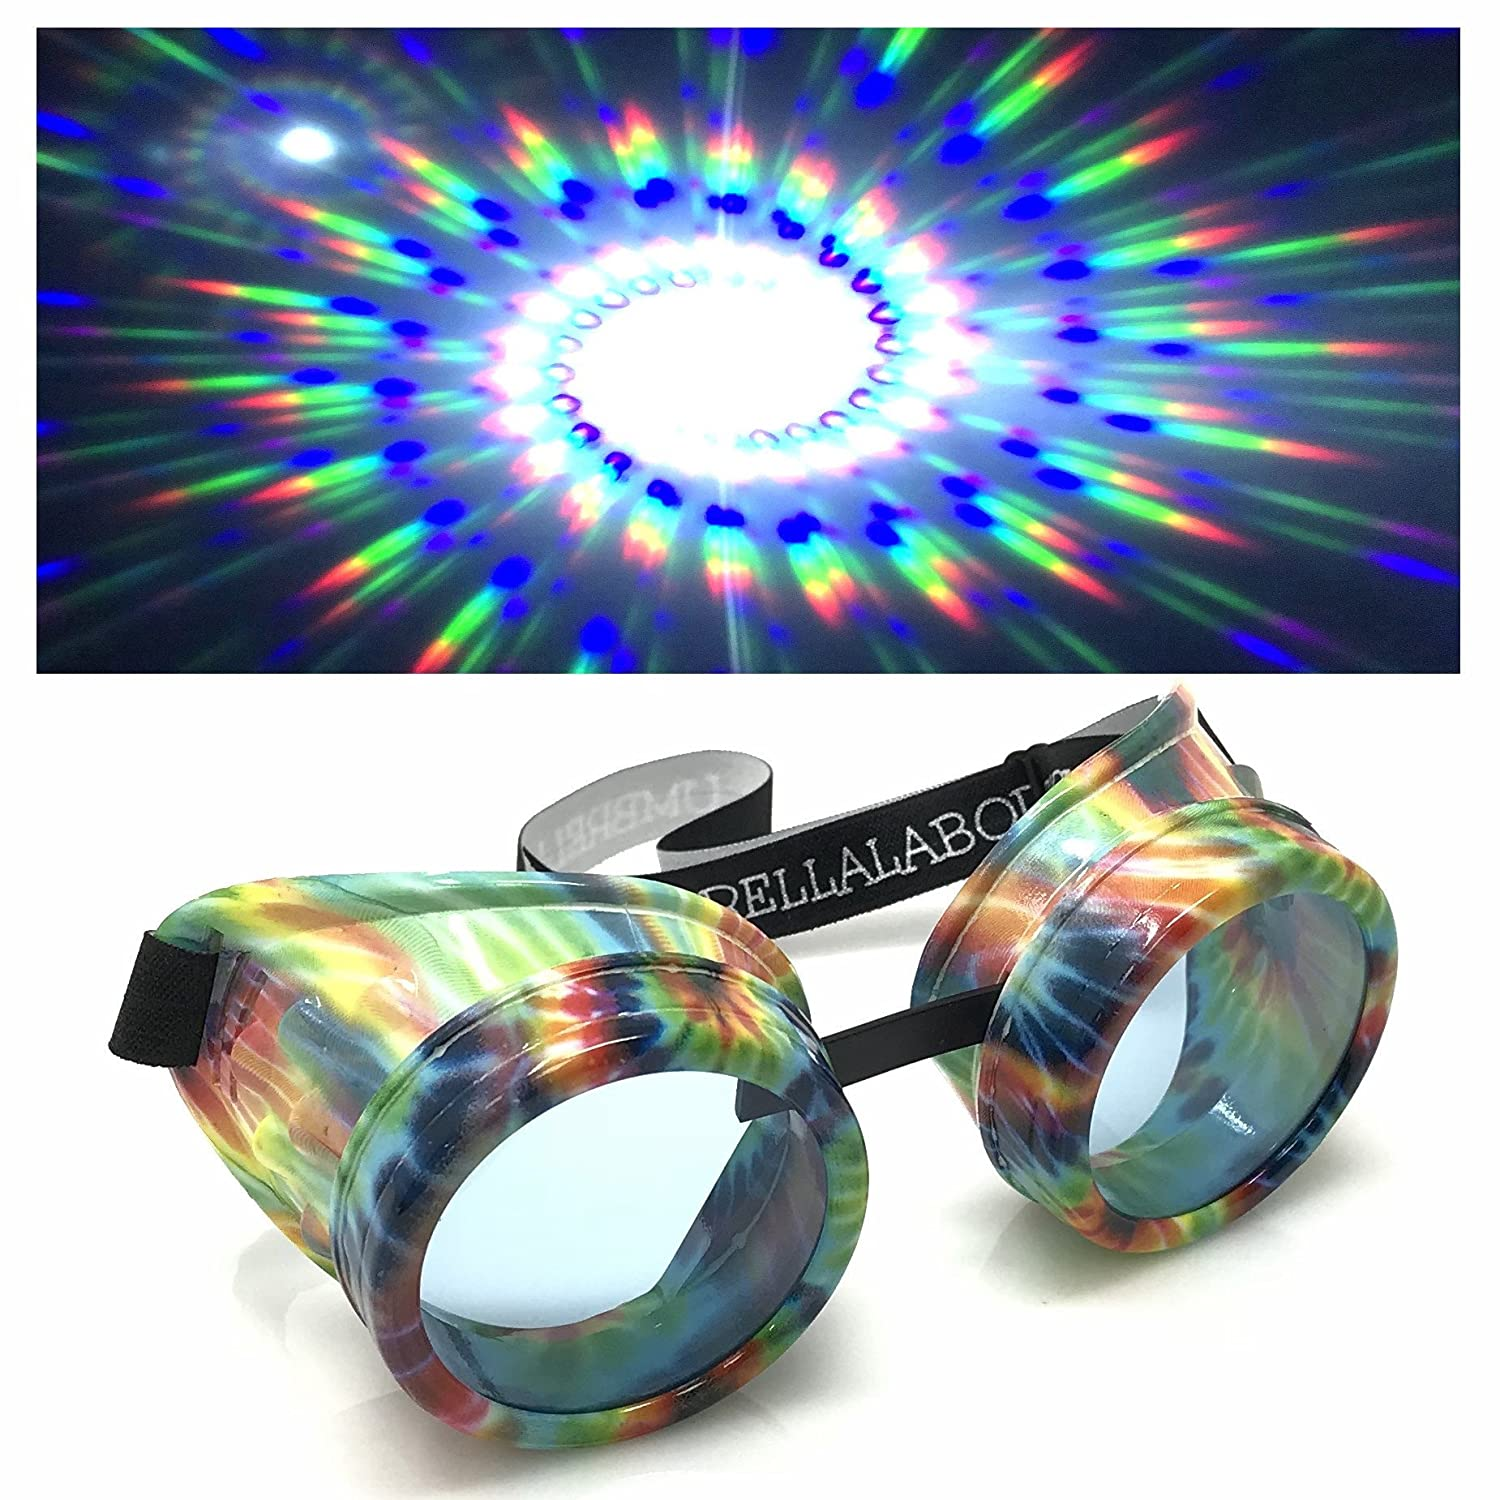 UMBRELLALABORATORY UV Glow in The Dark Steampunk Rave Goggles Spiral Diffraction Retro Round Glasses cc clear spiral diffraction